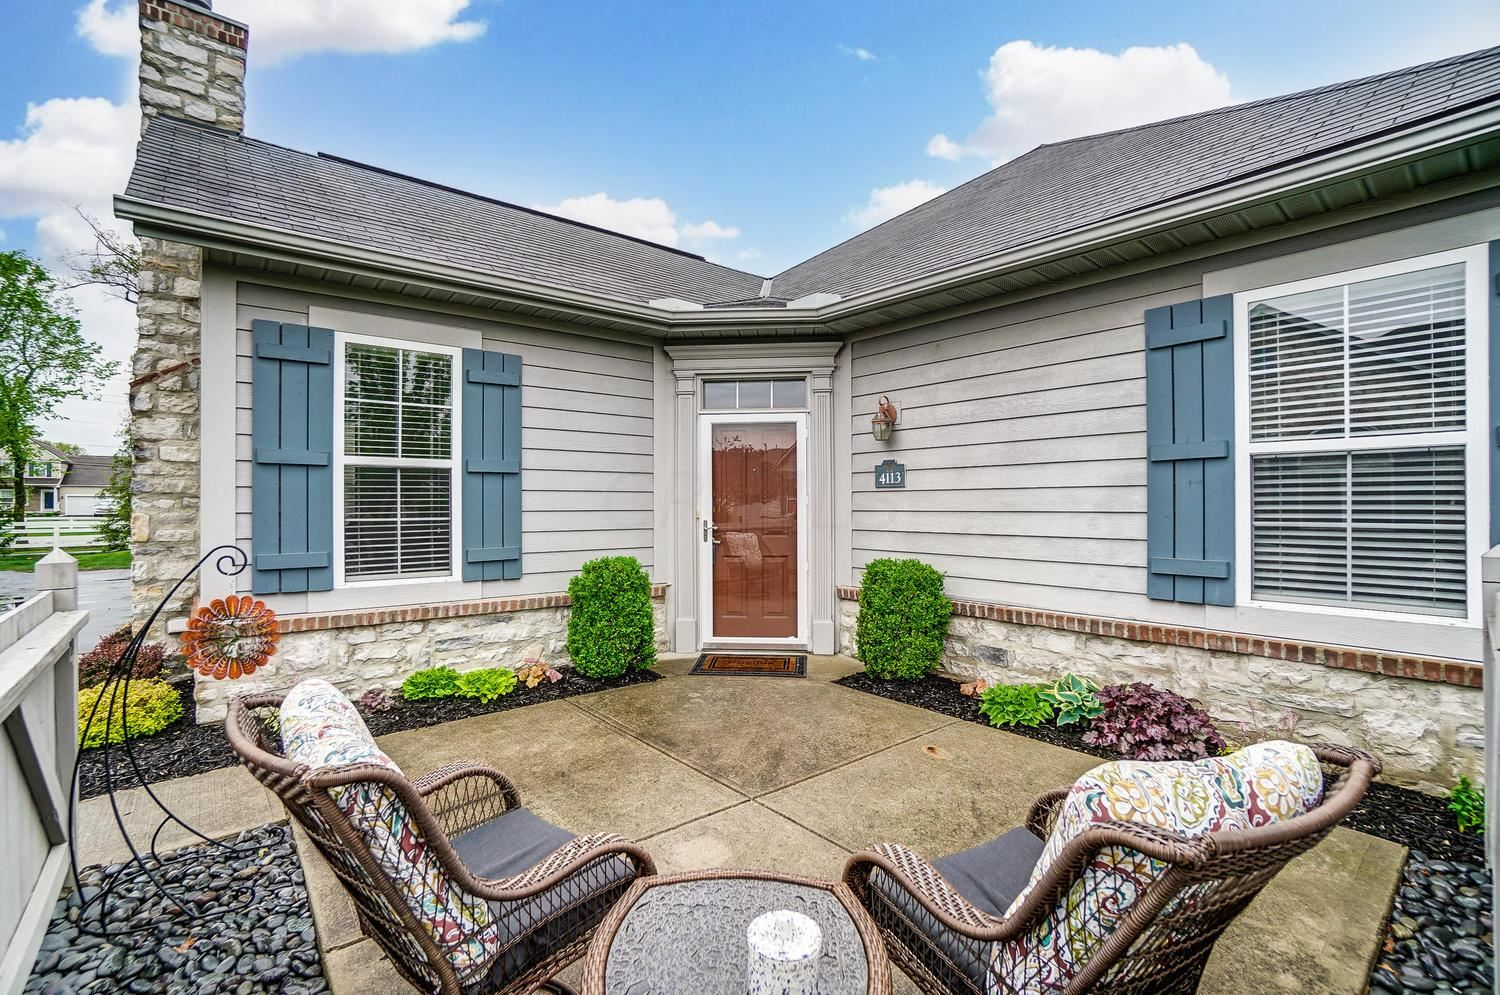 Photo of 4113 Aumbrey Court #35-411, New Albany, OH 43054 (MLS # 221014294)